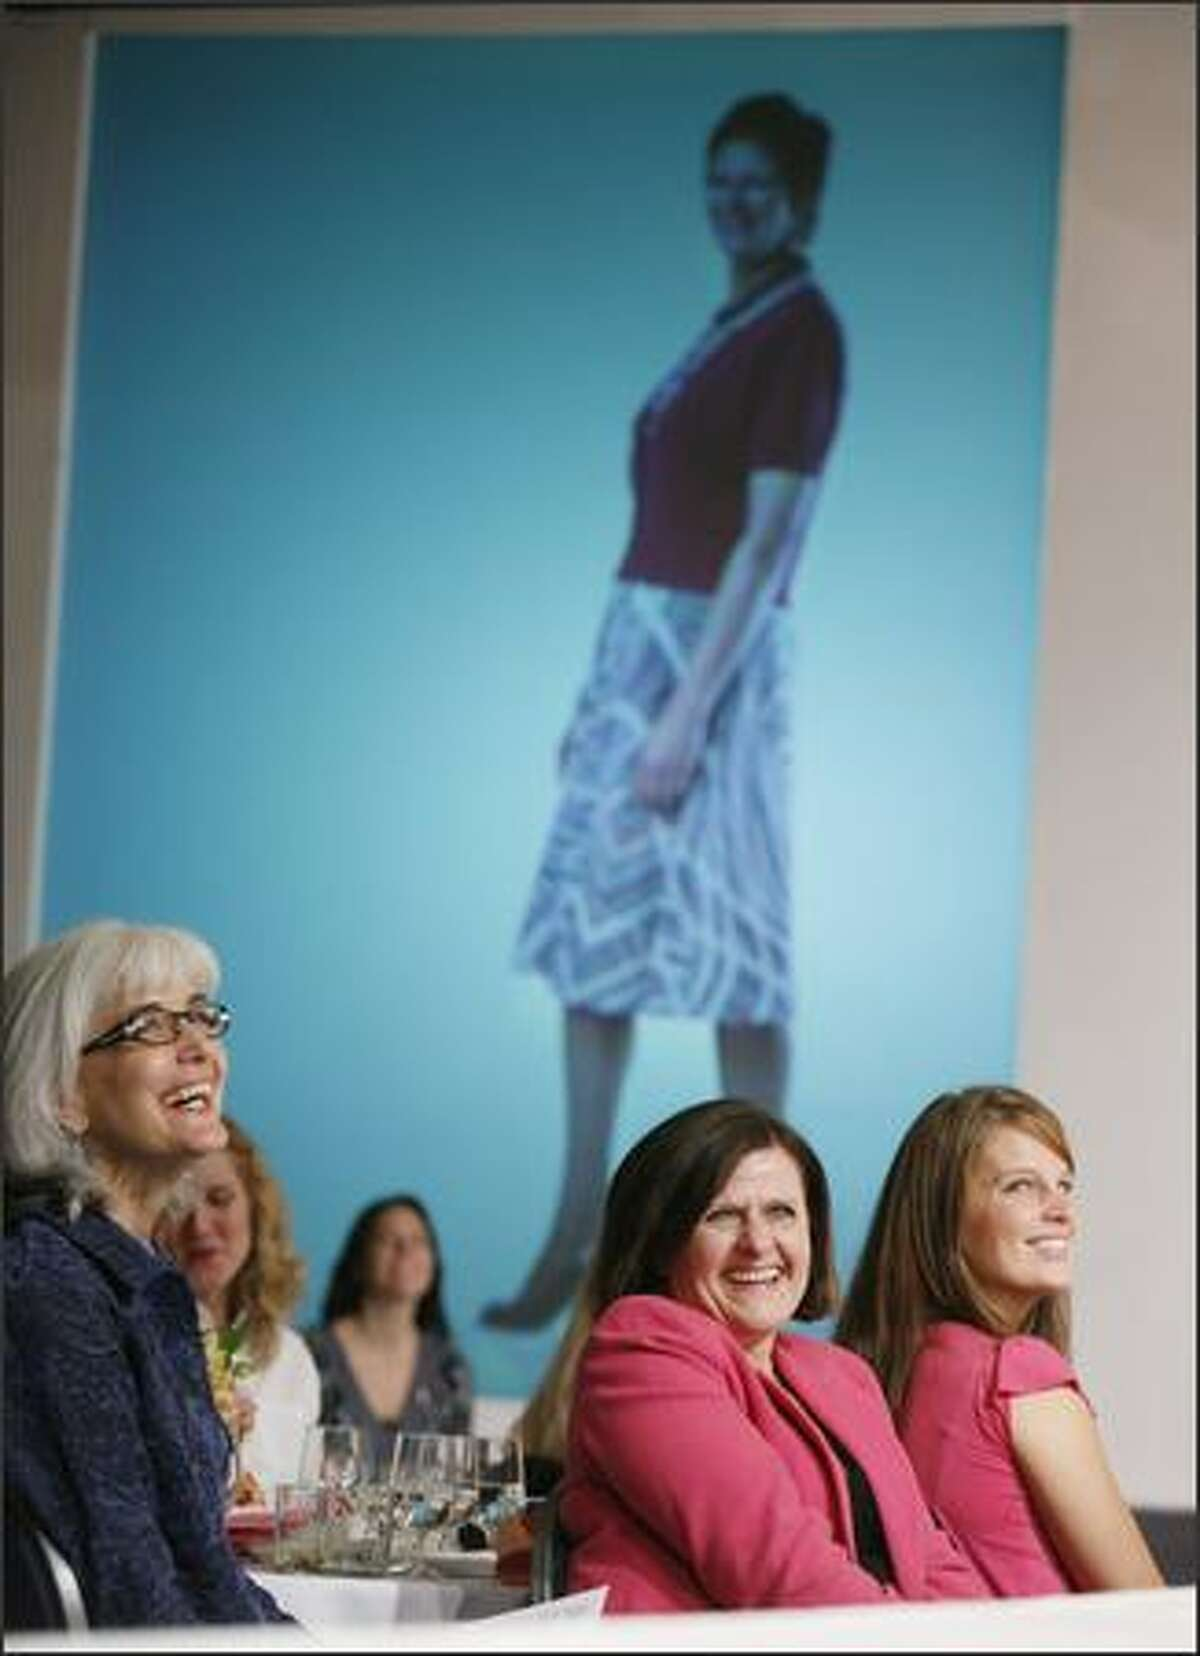 A sold-out audience watches the Macy's Breast Cancer Survivor Fashion Show.